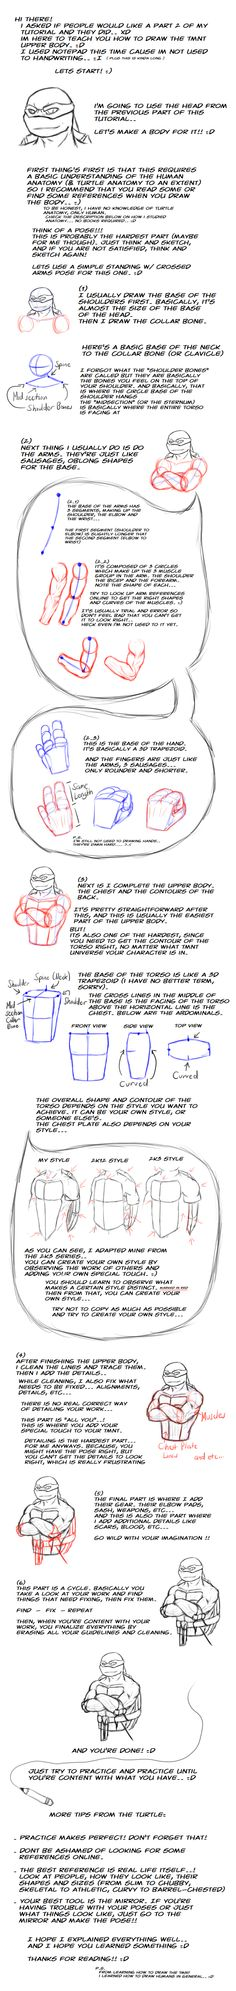 TMNT - How to Draw: Upper Body by ~XeNiM666 on deviantART